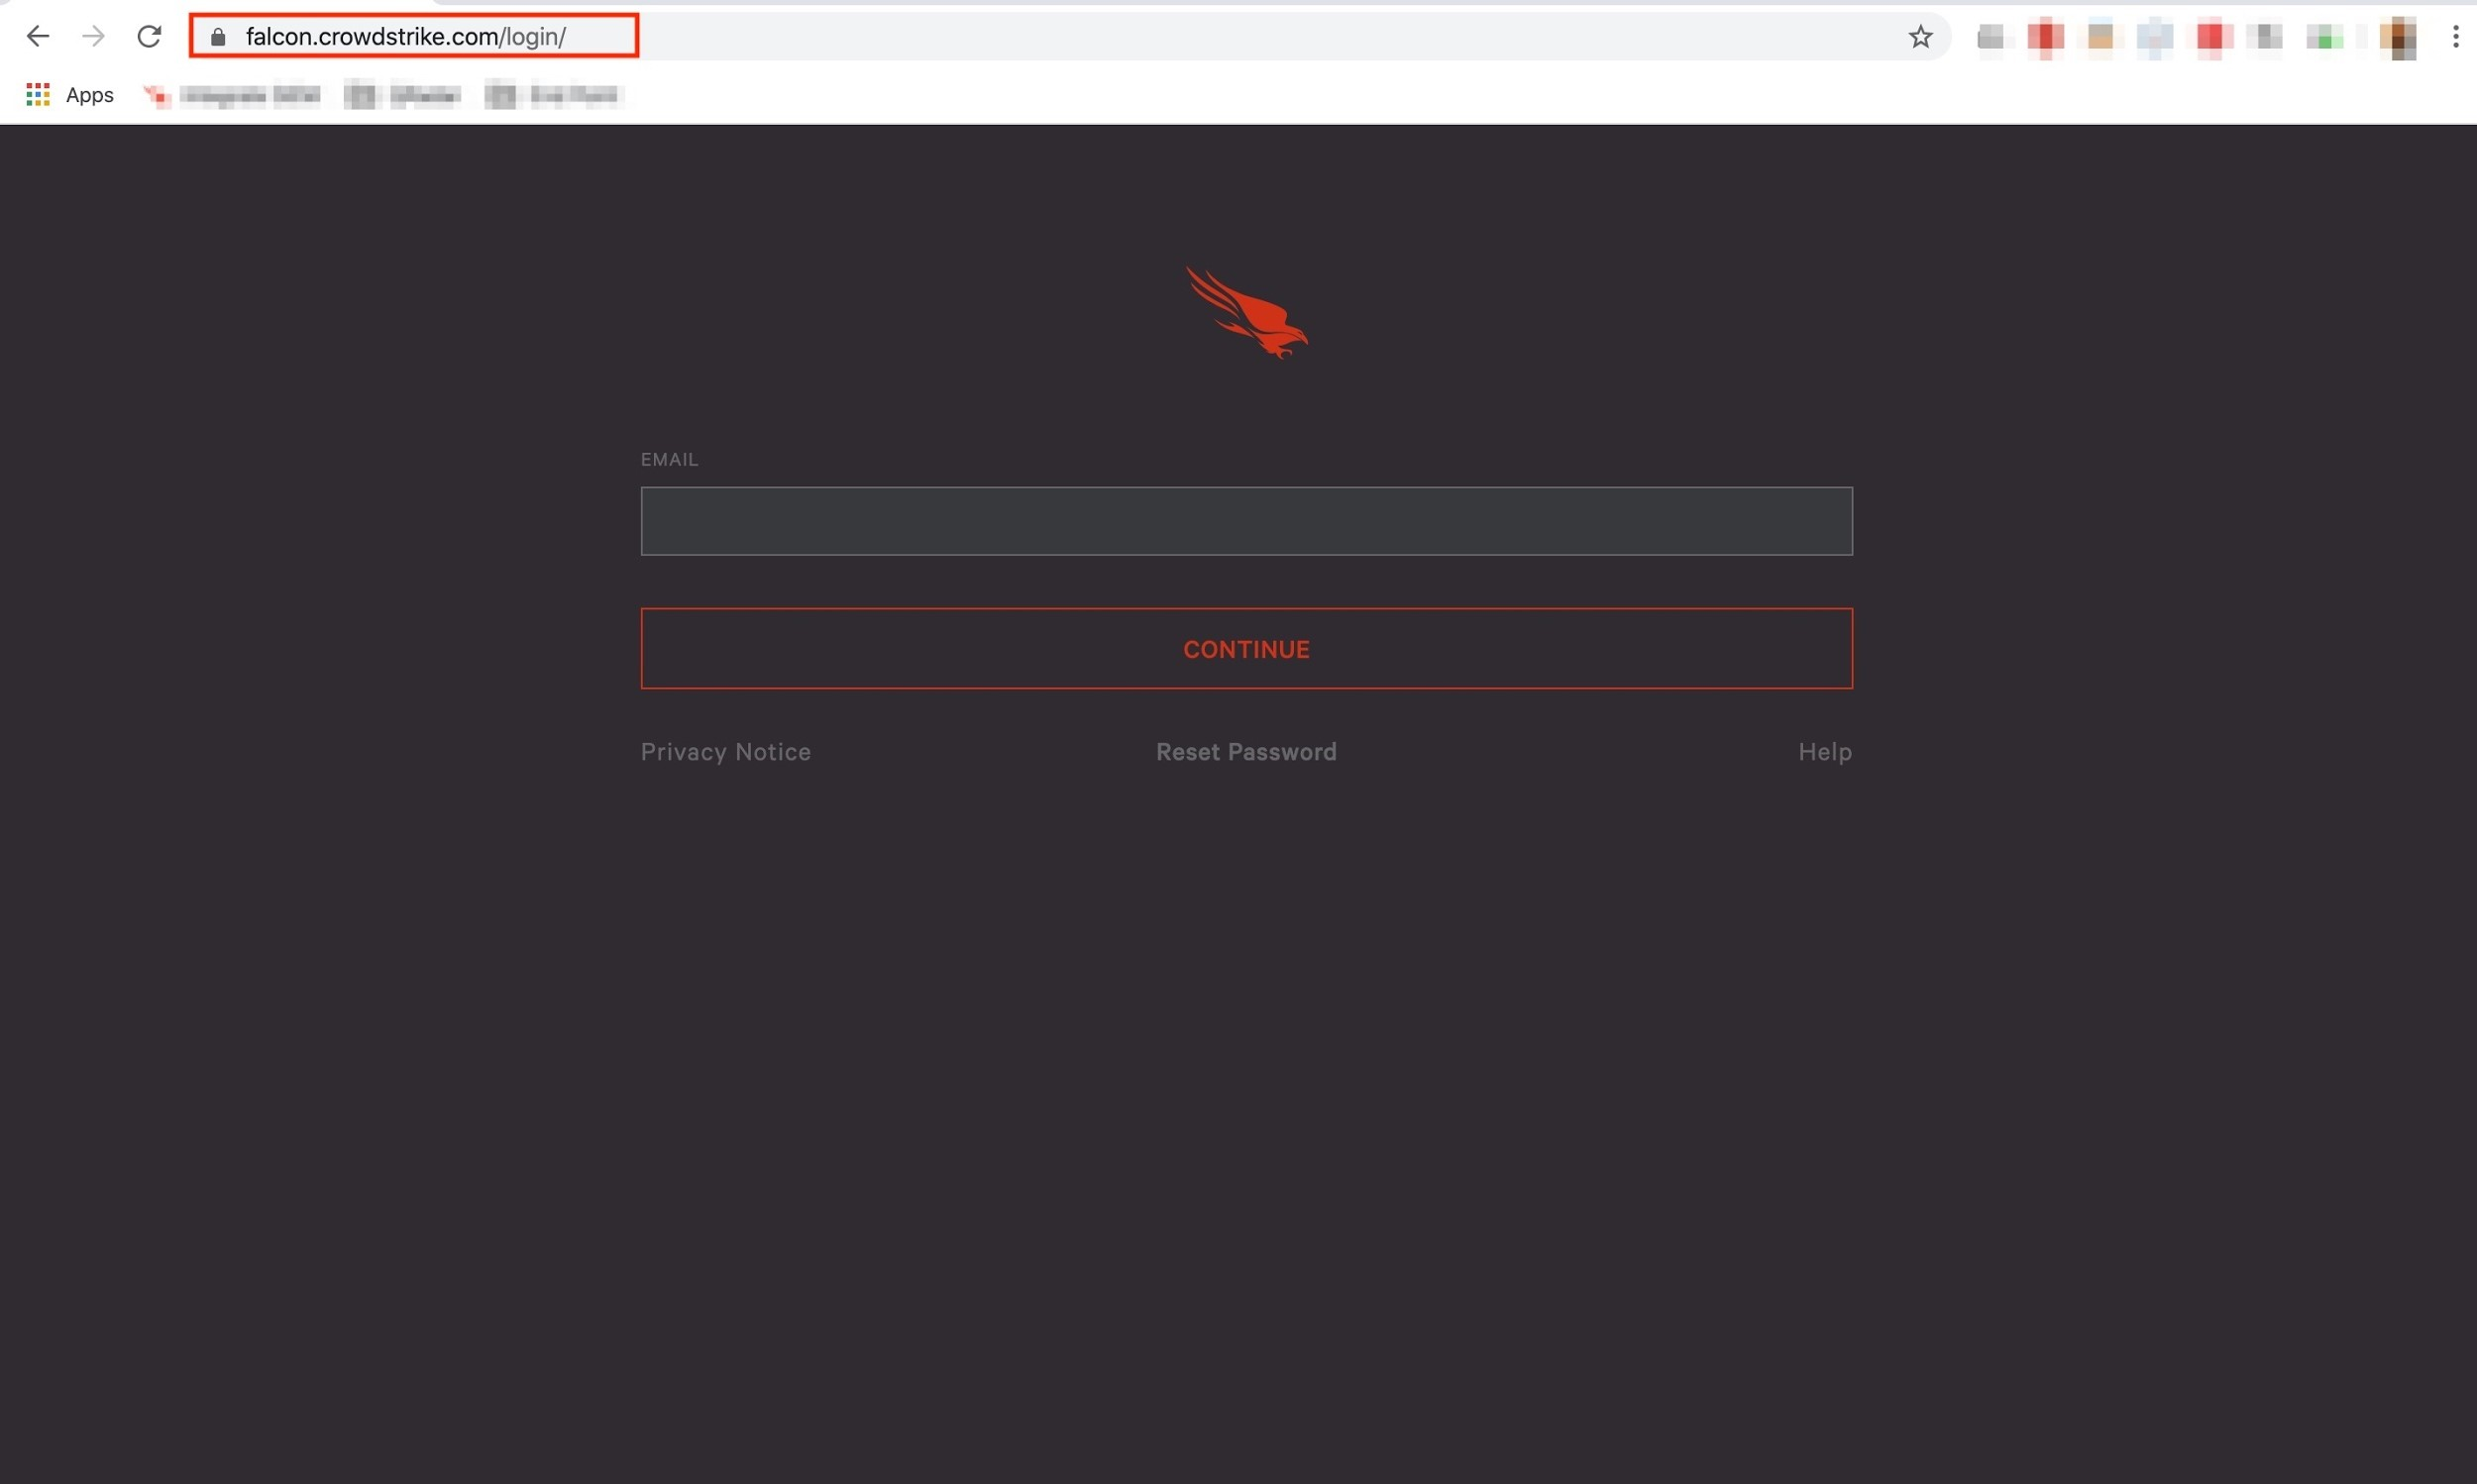 zscaler crowdstrike login